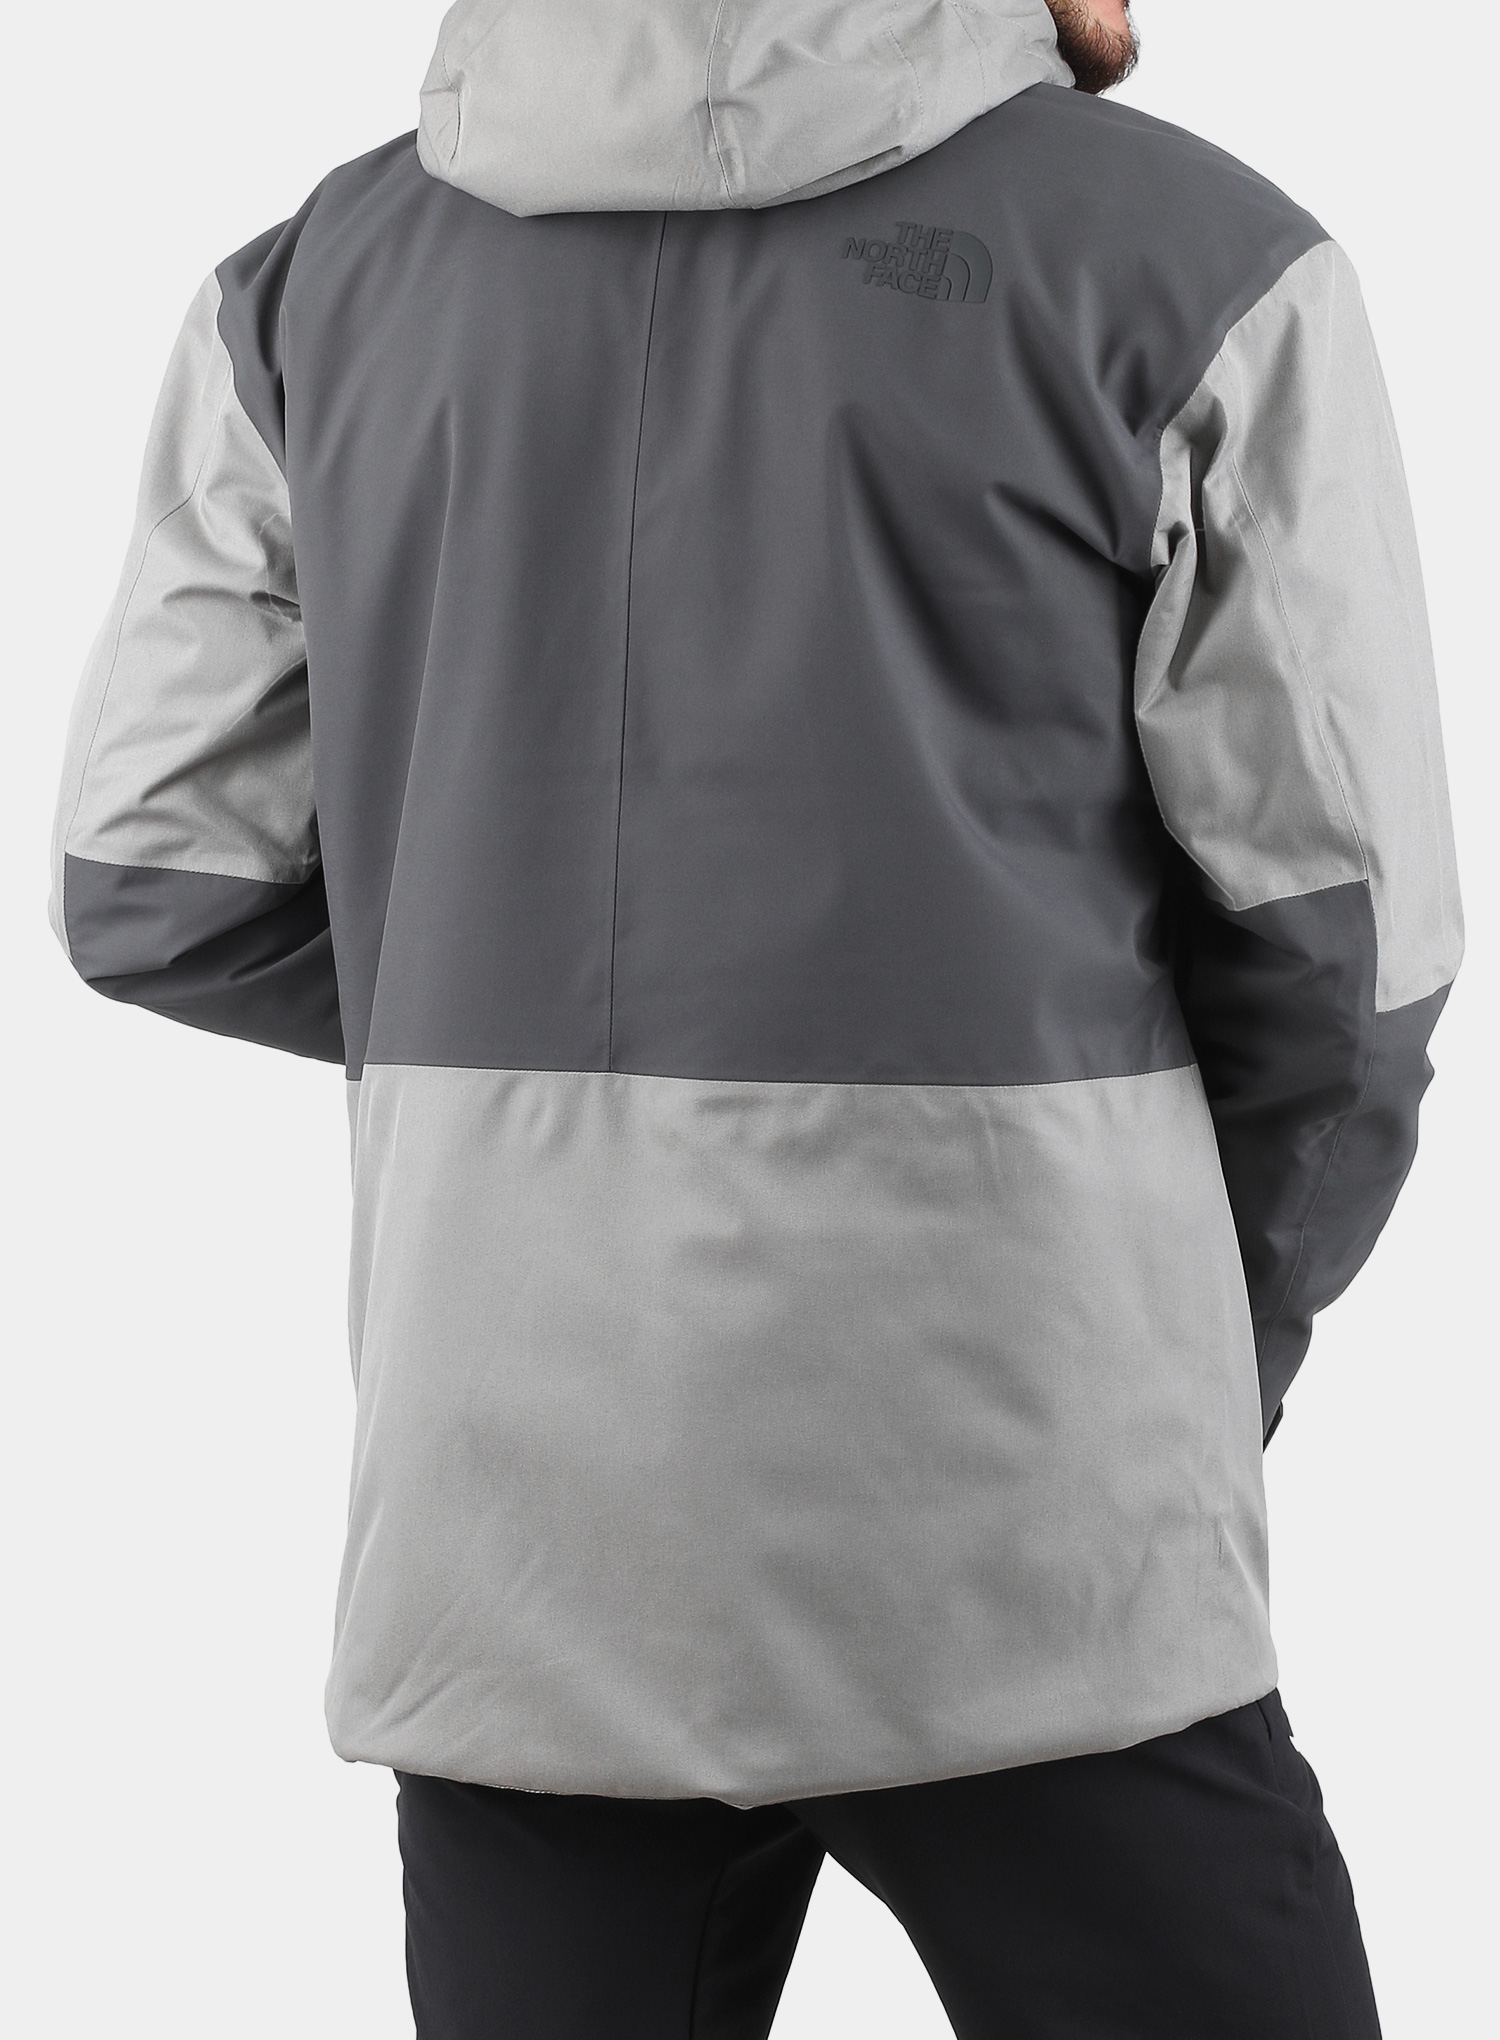 Kurtka The North Face Chakal Jacket - meld grey/vanadis grey - zdjęcie nr. 2